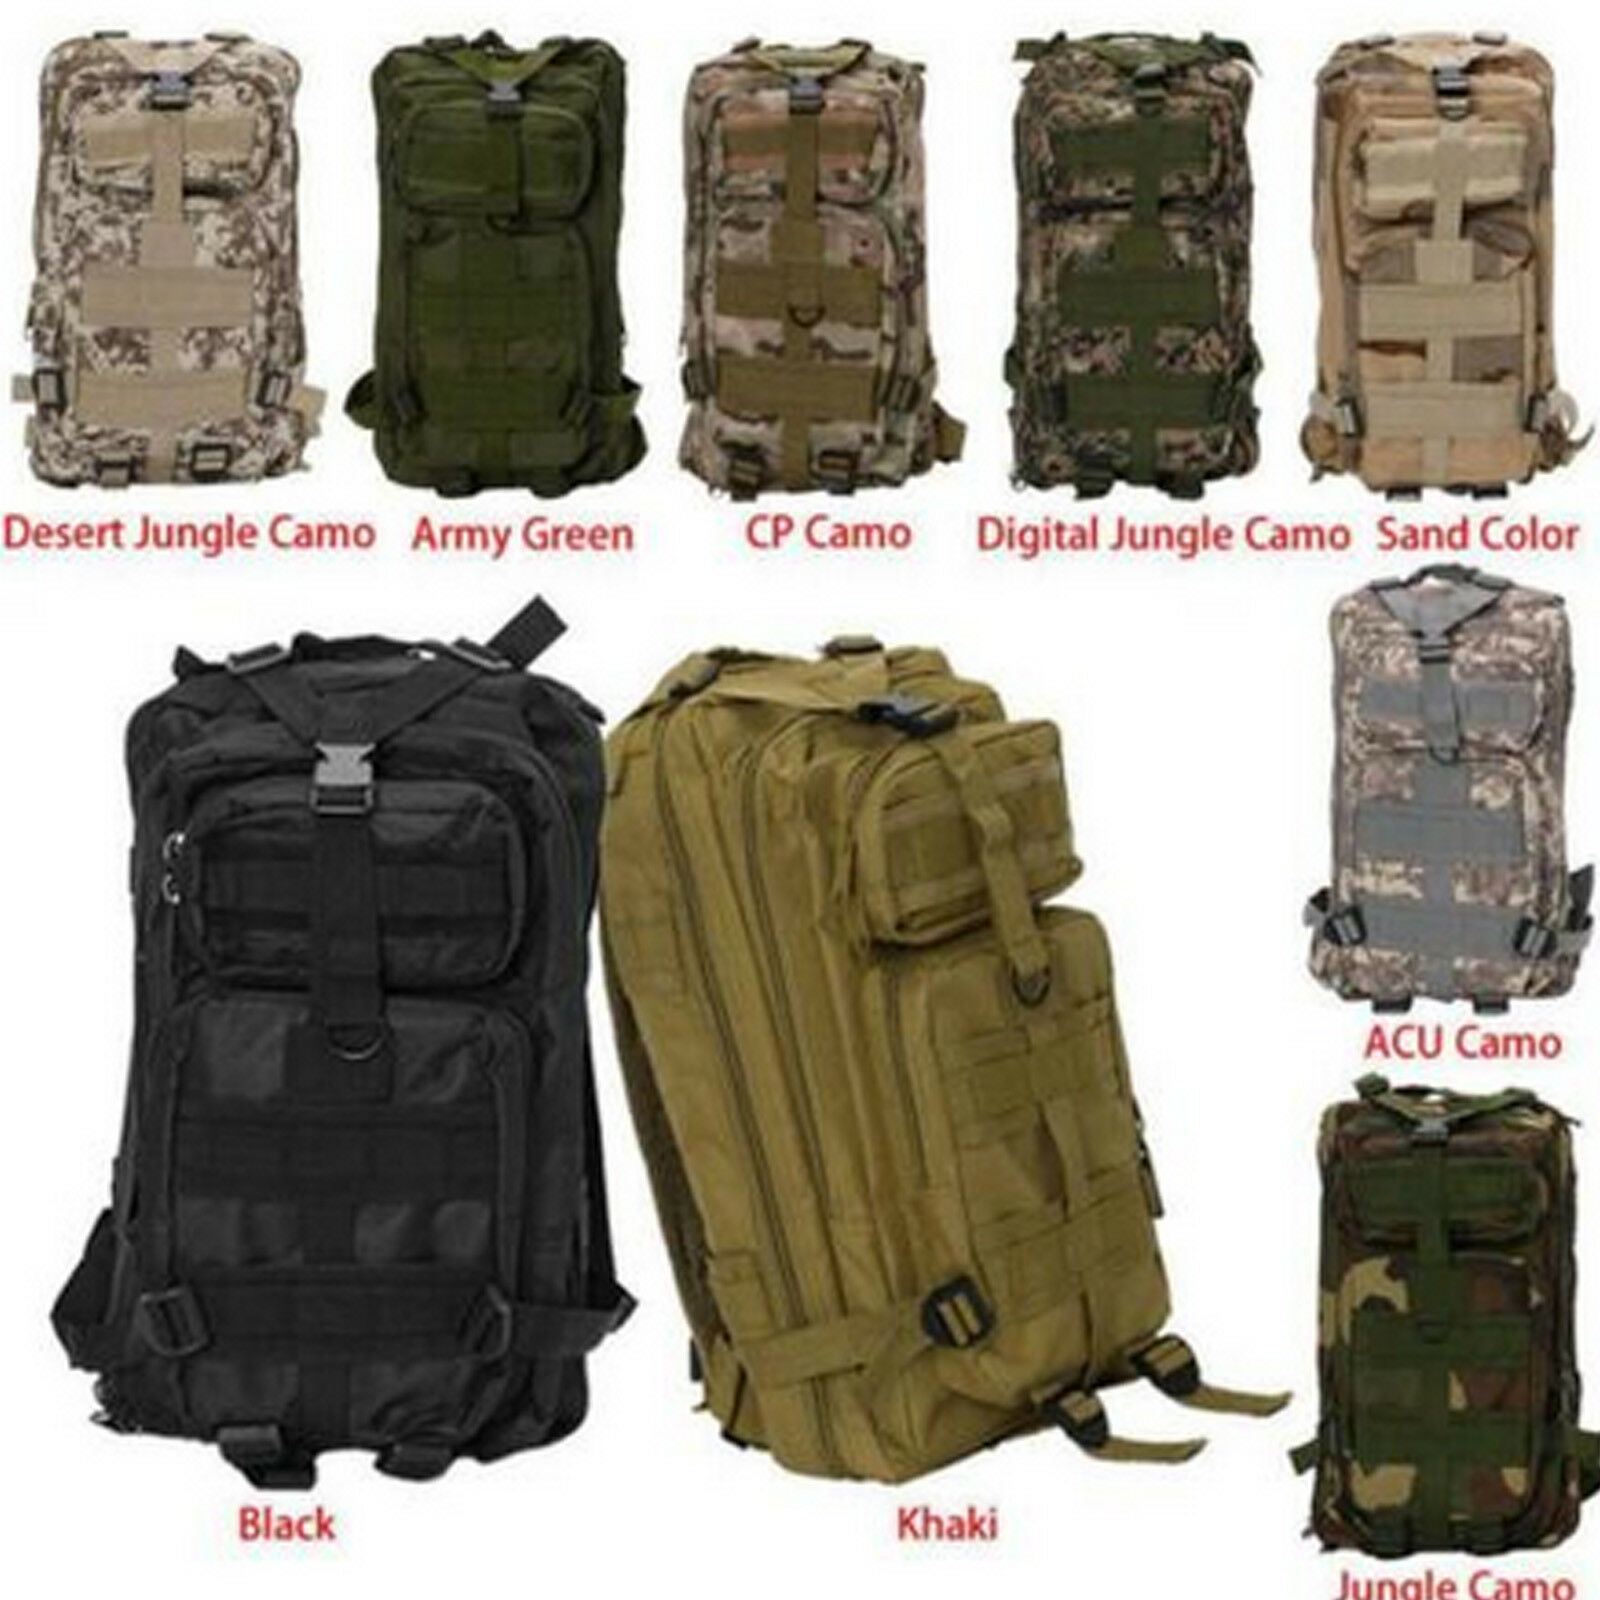 Large Outfit Tactical Backpack 3 Day Assault Pack Molle Gear Out Bag U... - s l1600